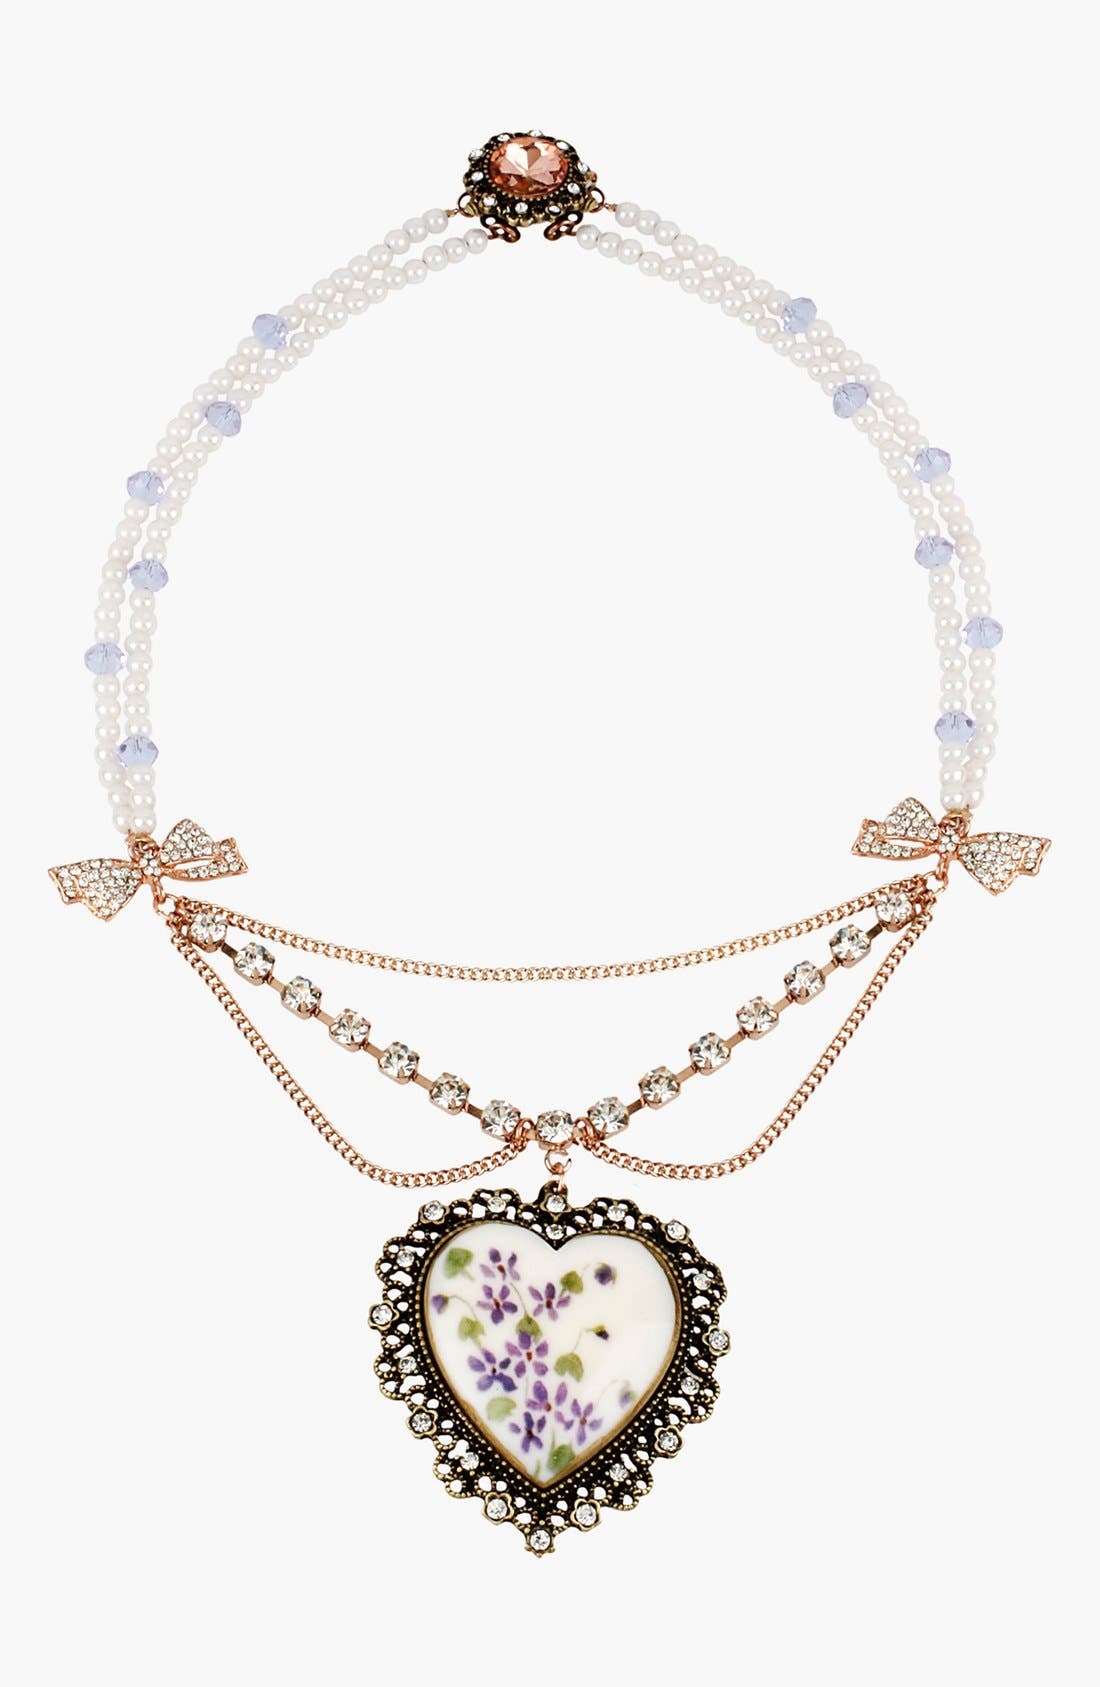 Alternate Image 1 Selected - Betsey Johnson 'Vintage Bow' Heart Pendant Necklace